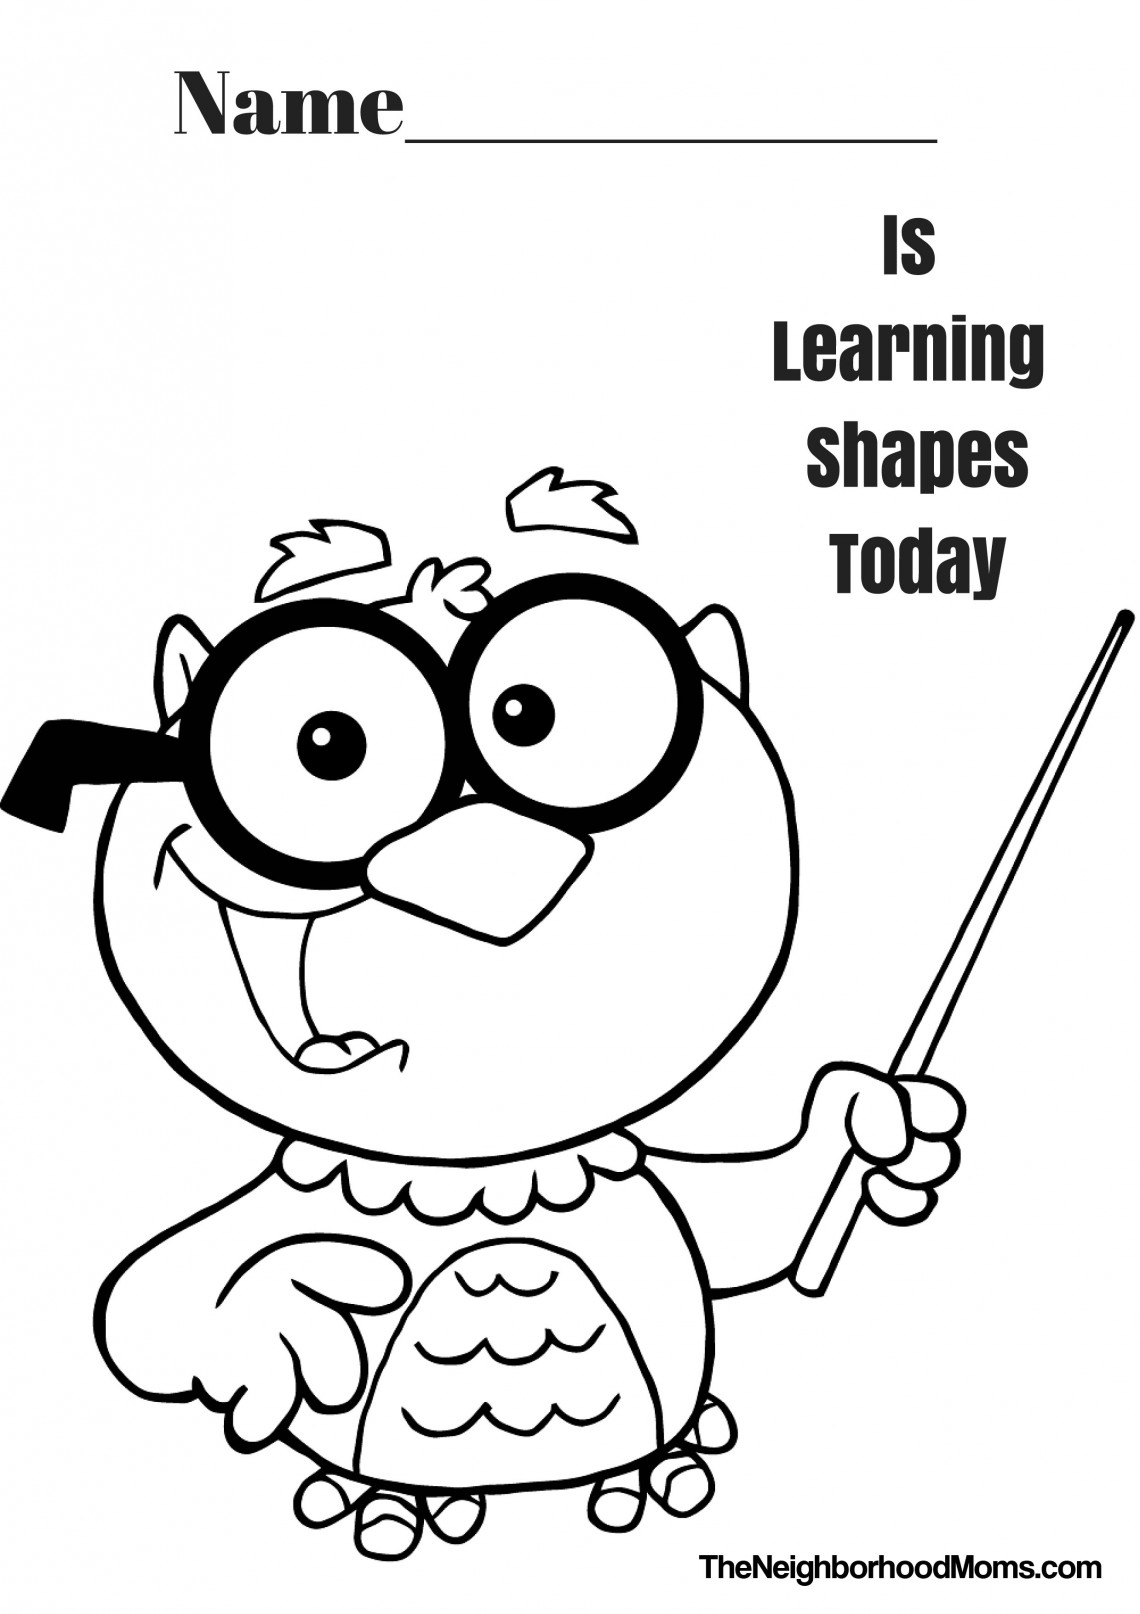 Circle Coloring Pages Toddlers. this beach ball coloring page ...